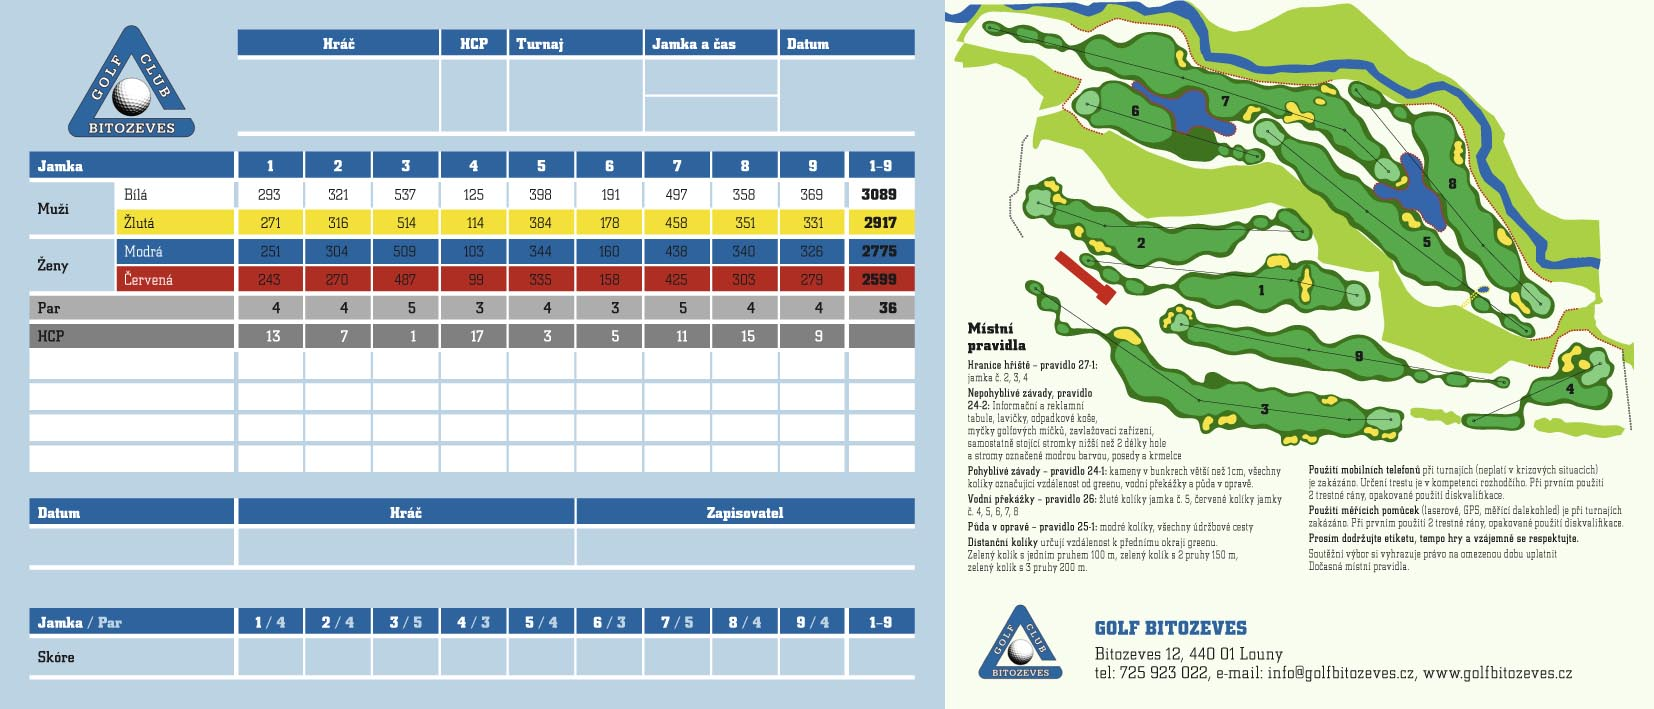 Golf Bítozeves - scorecard